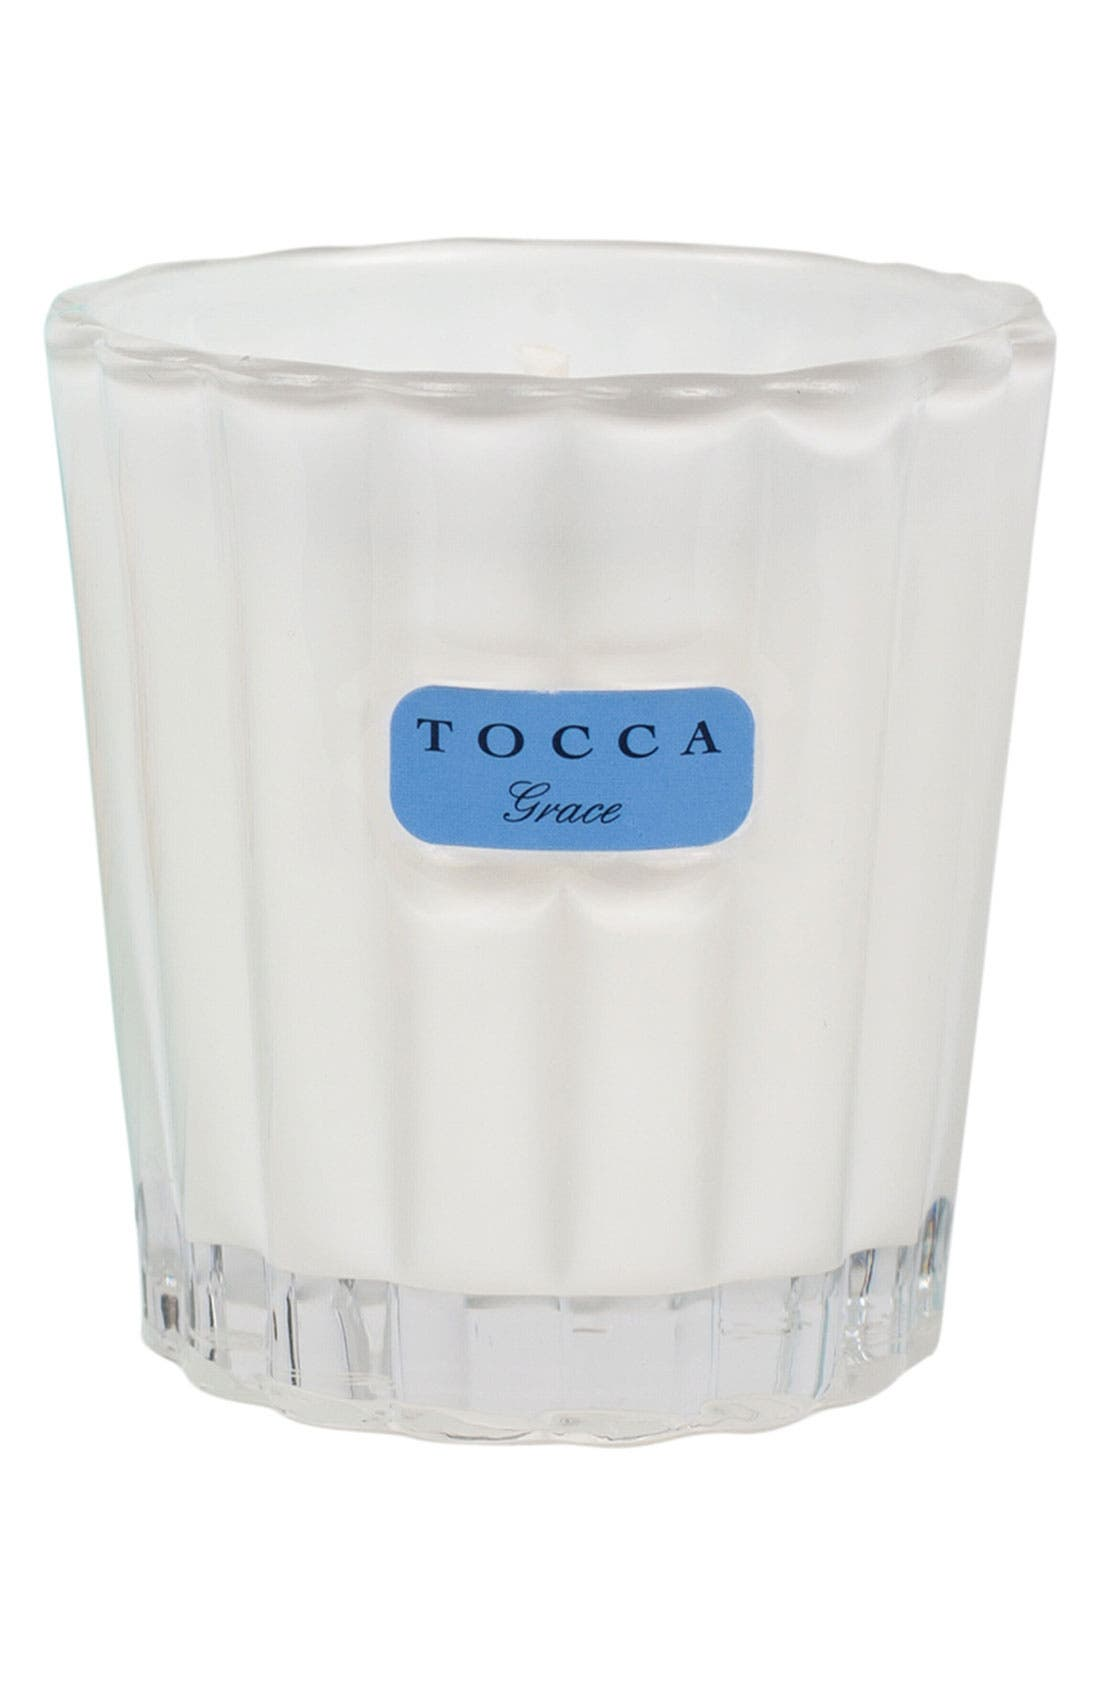 Main Image - TOCCA 'Grace' Candelina